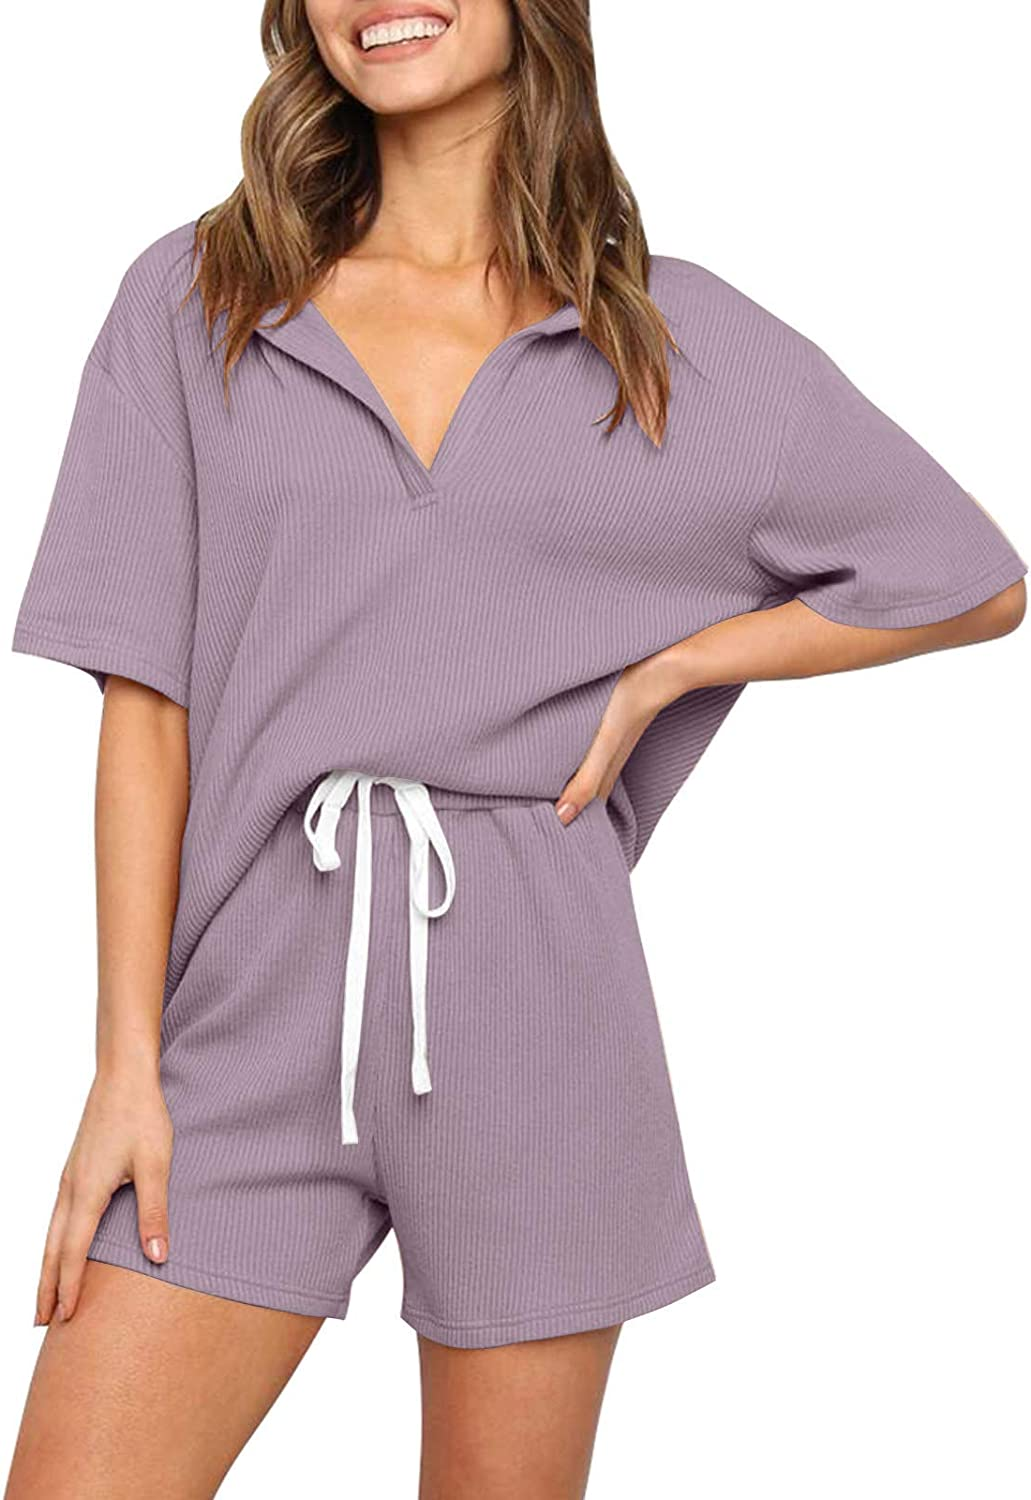 QANSI Women's Ribbed Knit Pajama Sets Short Sleeve Top and Shorts Two Piece Sleepwear Sweatsuit Outfits with Pockets